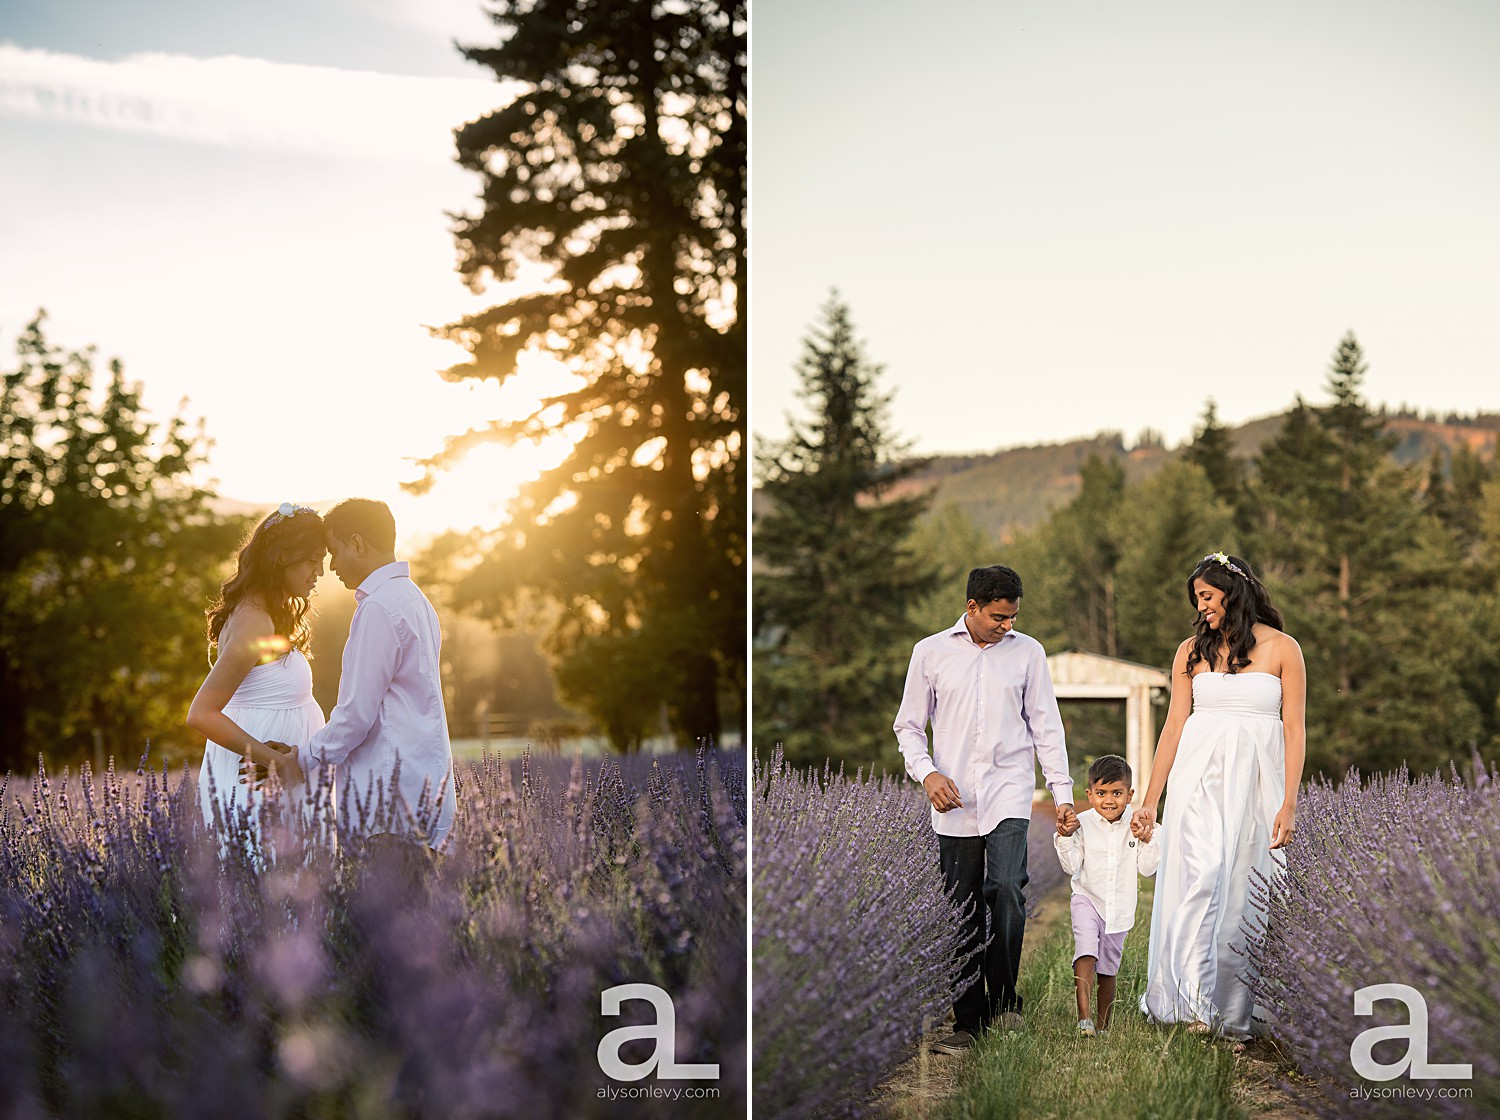 Hood-River-Lavender-Valley-Maternity-Photography_0014.jpg